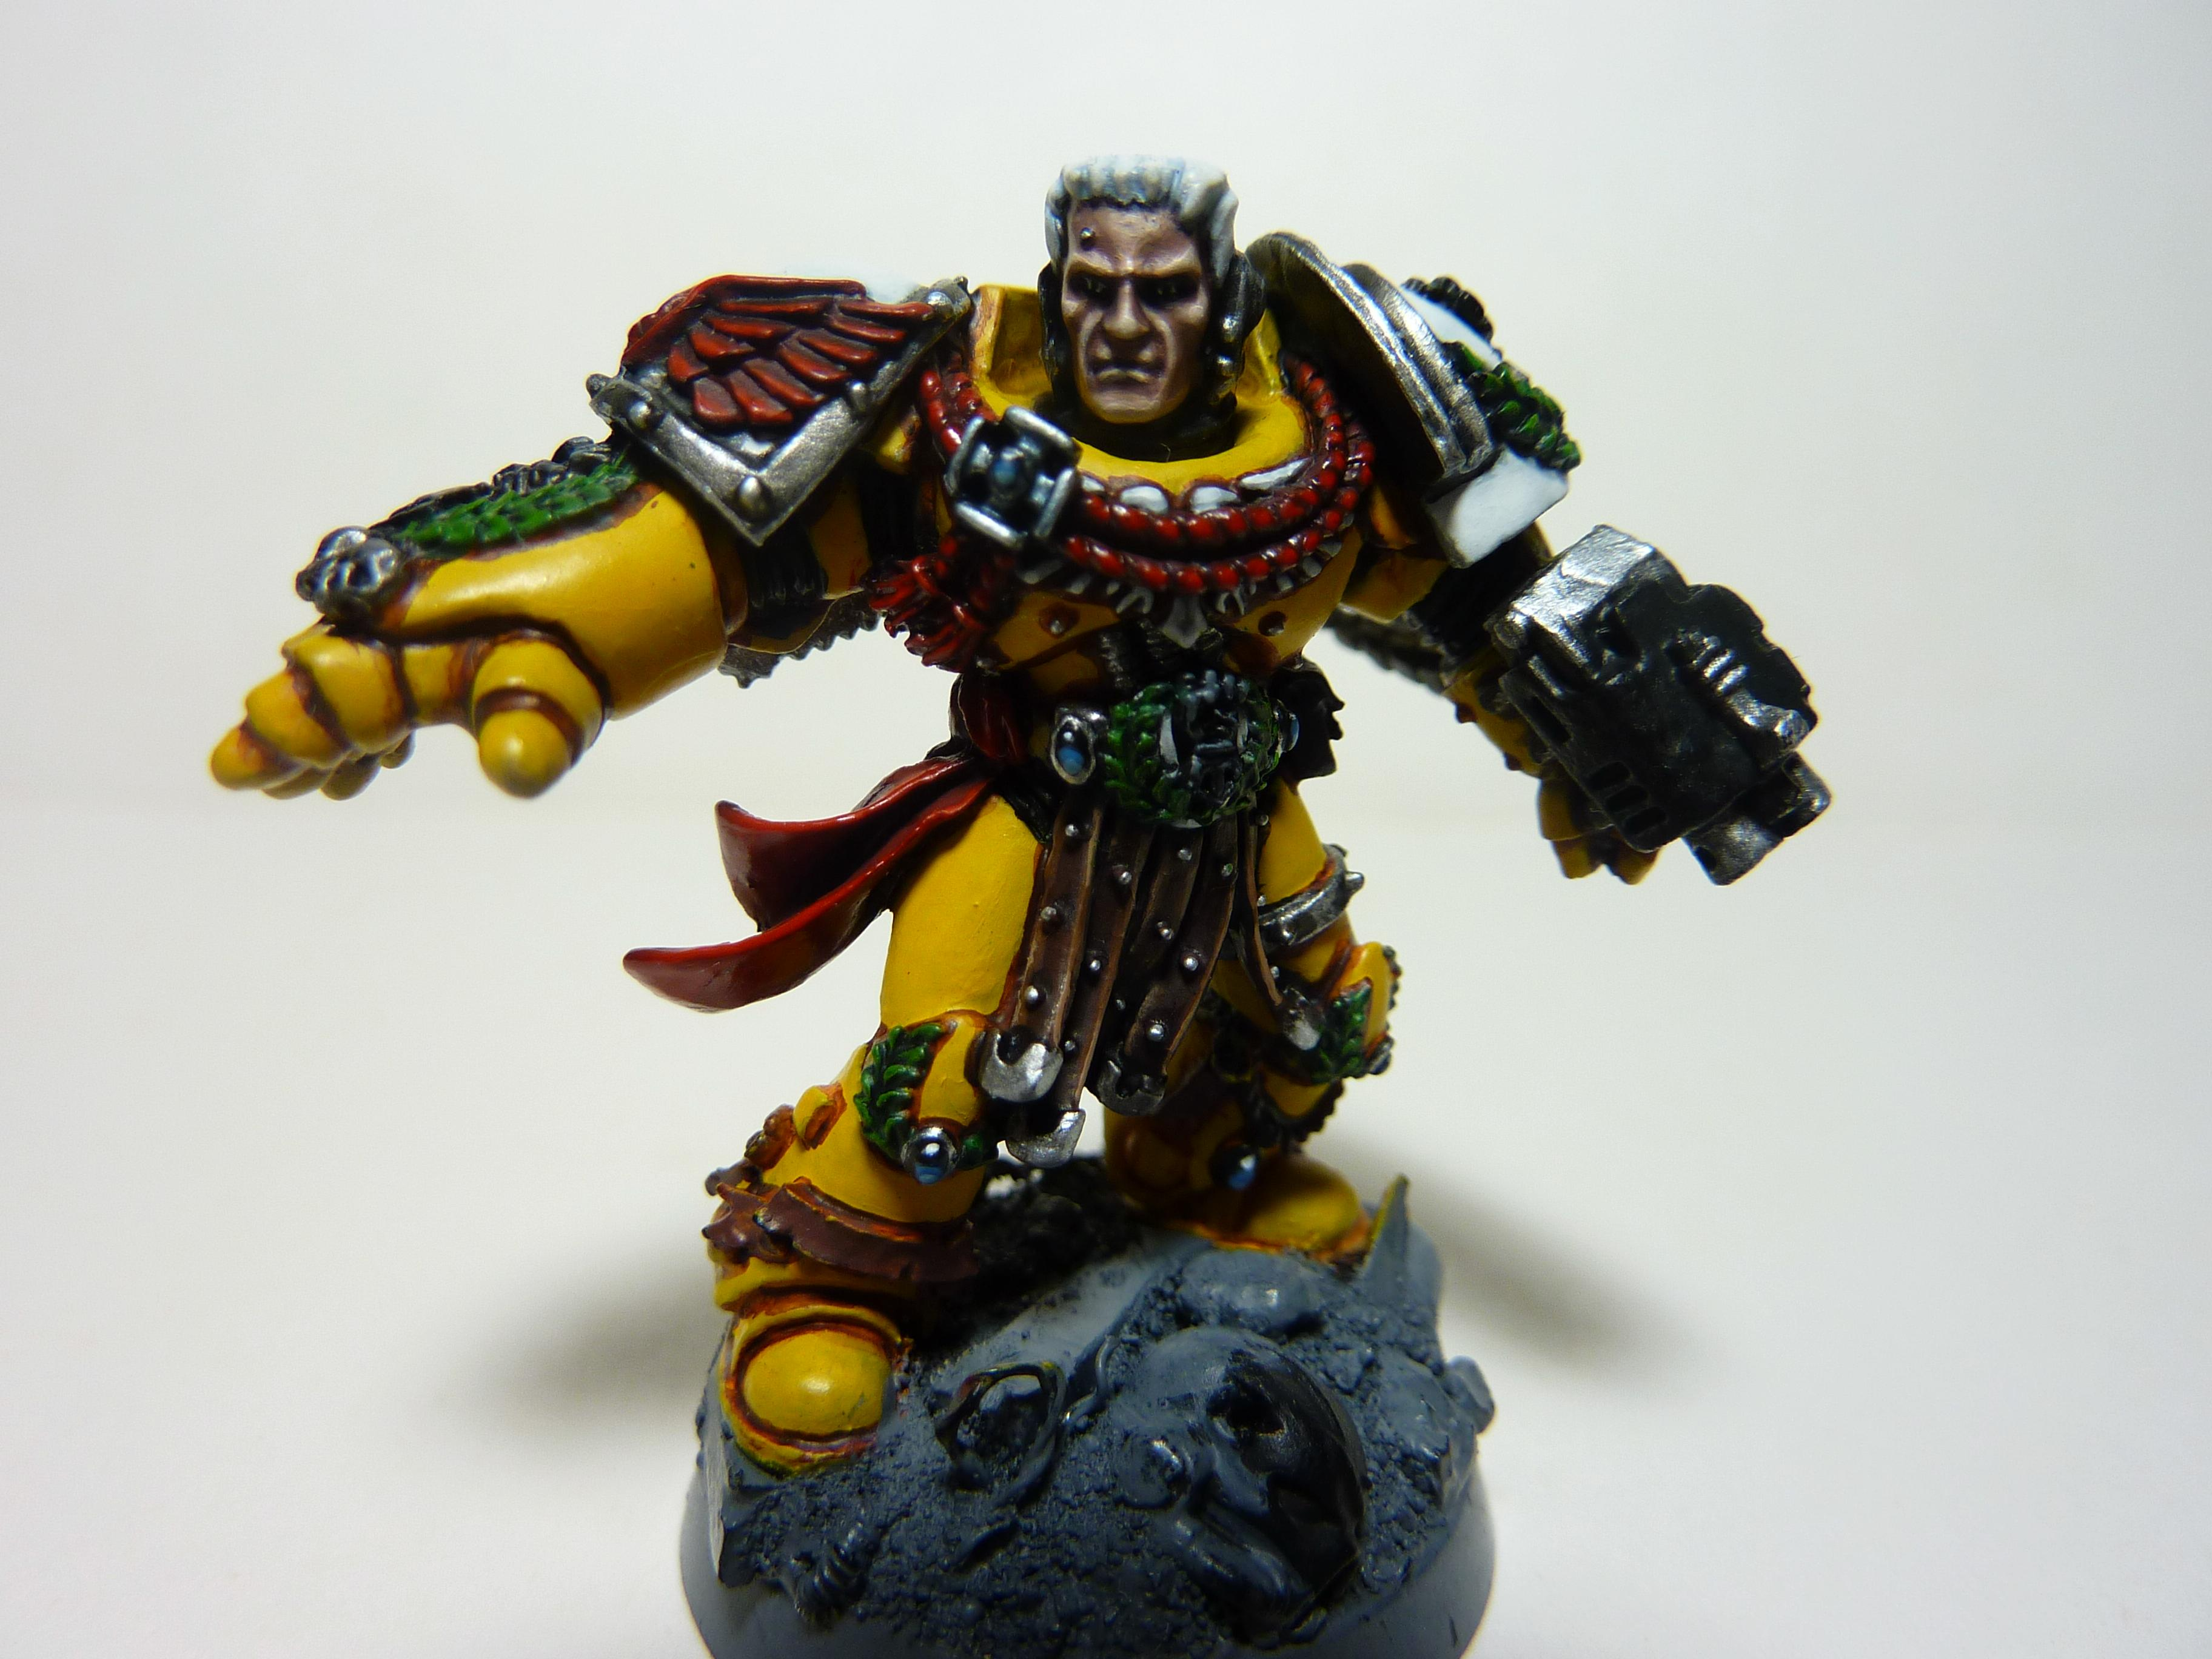 Imperial Fists, Pedro Kantor, Space Marines, Warhammer 40,000